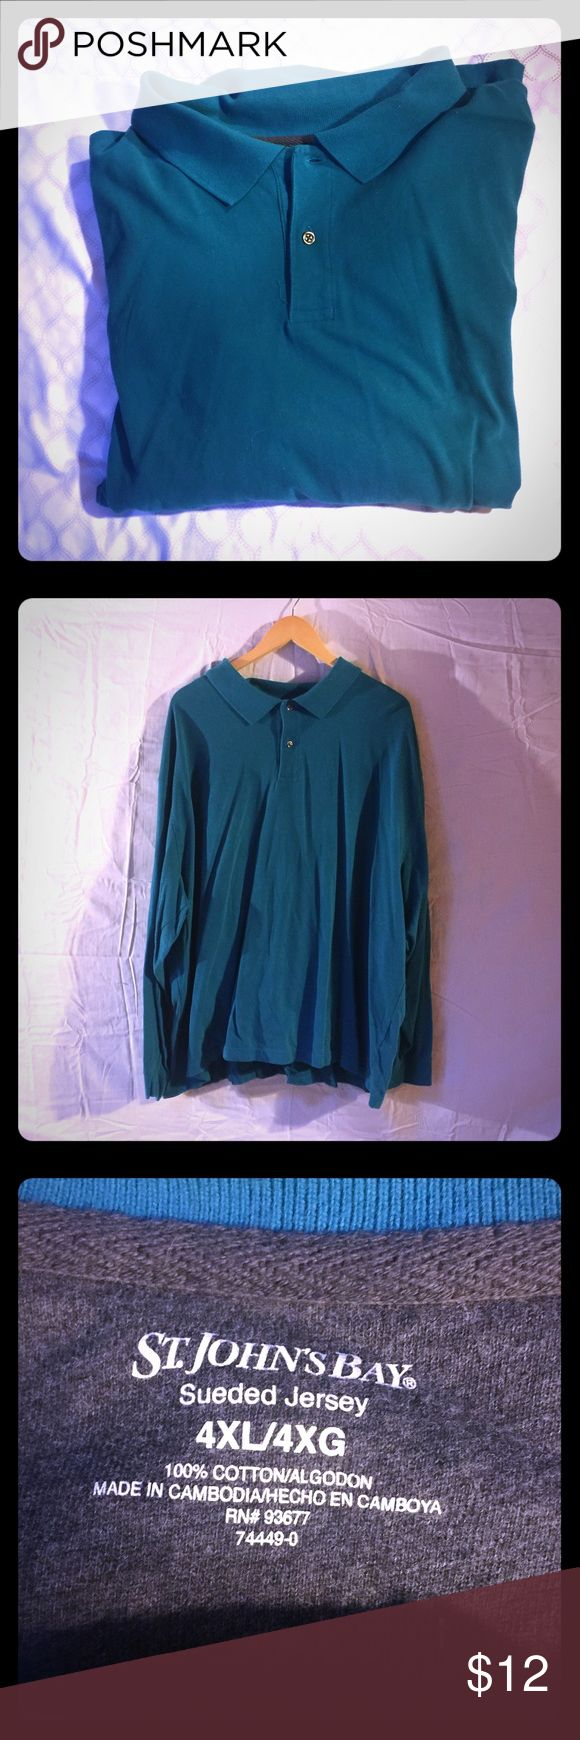 "Men's long sleeve polo 4XL NWOT 4XL men's deep teal long sleeve polo. 100% cotton sueded jersey super soft and comfortable. Never worn. Measures pit to pit 31"", rear collar to hem 29"". Smoke free home. No trades. Reasonable offers welcome. St John's Bay Shirts Polos"